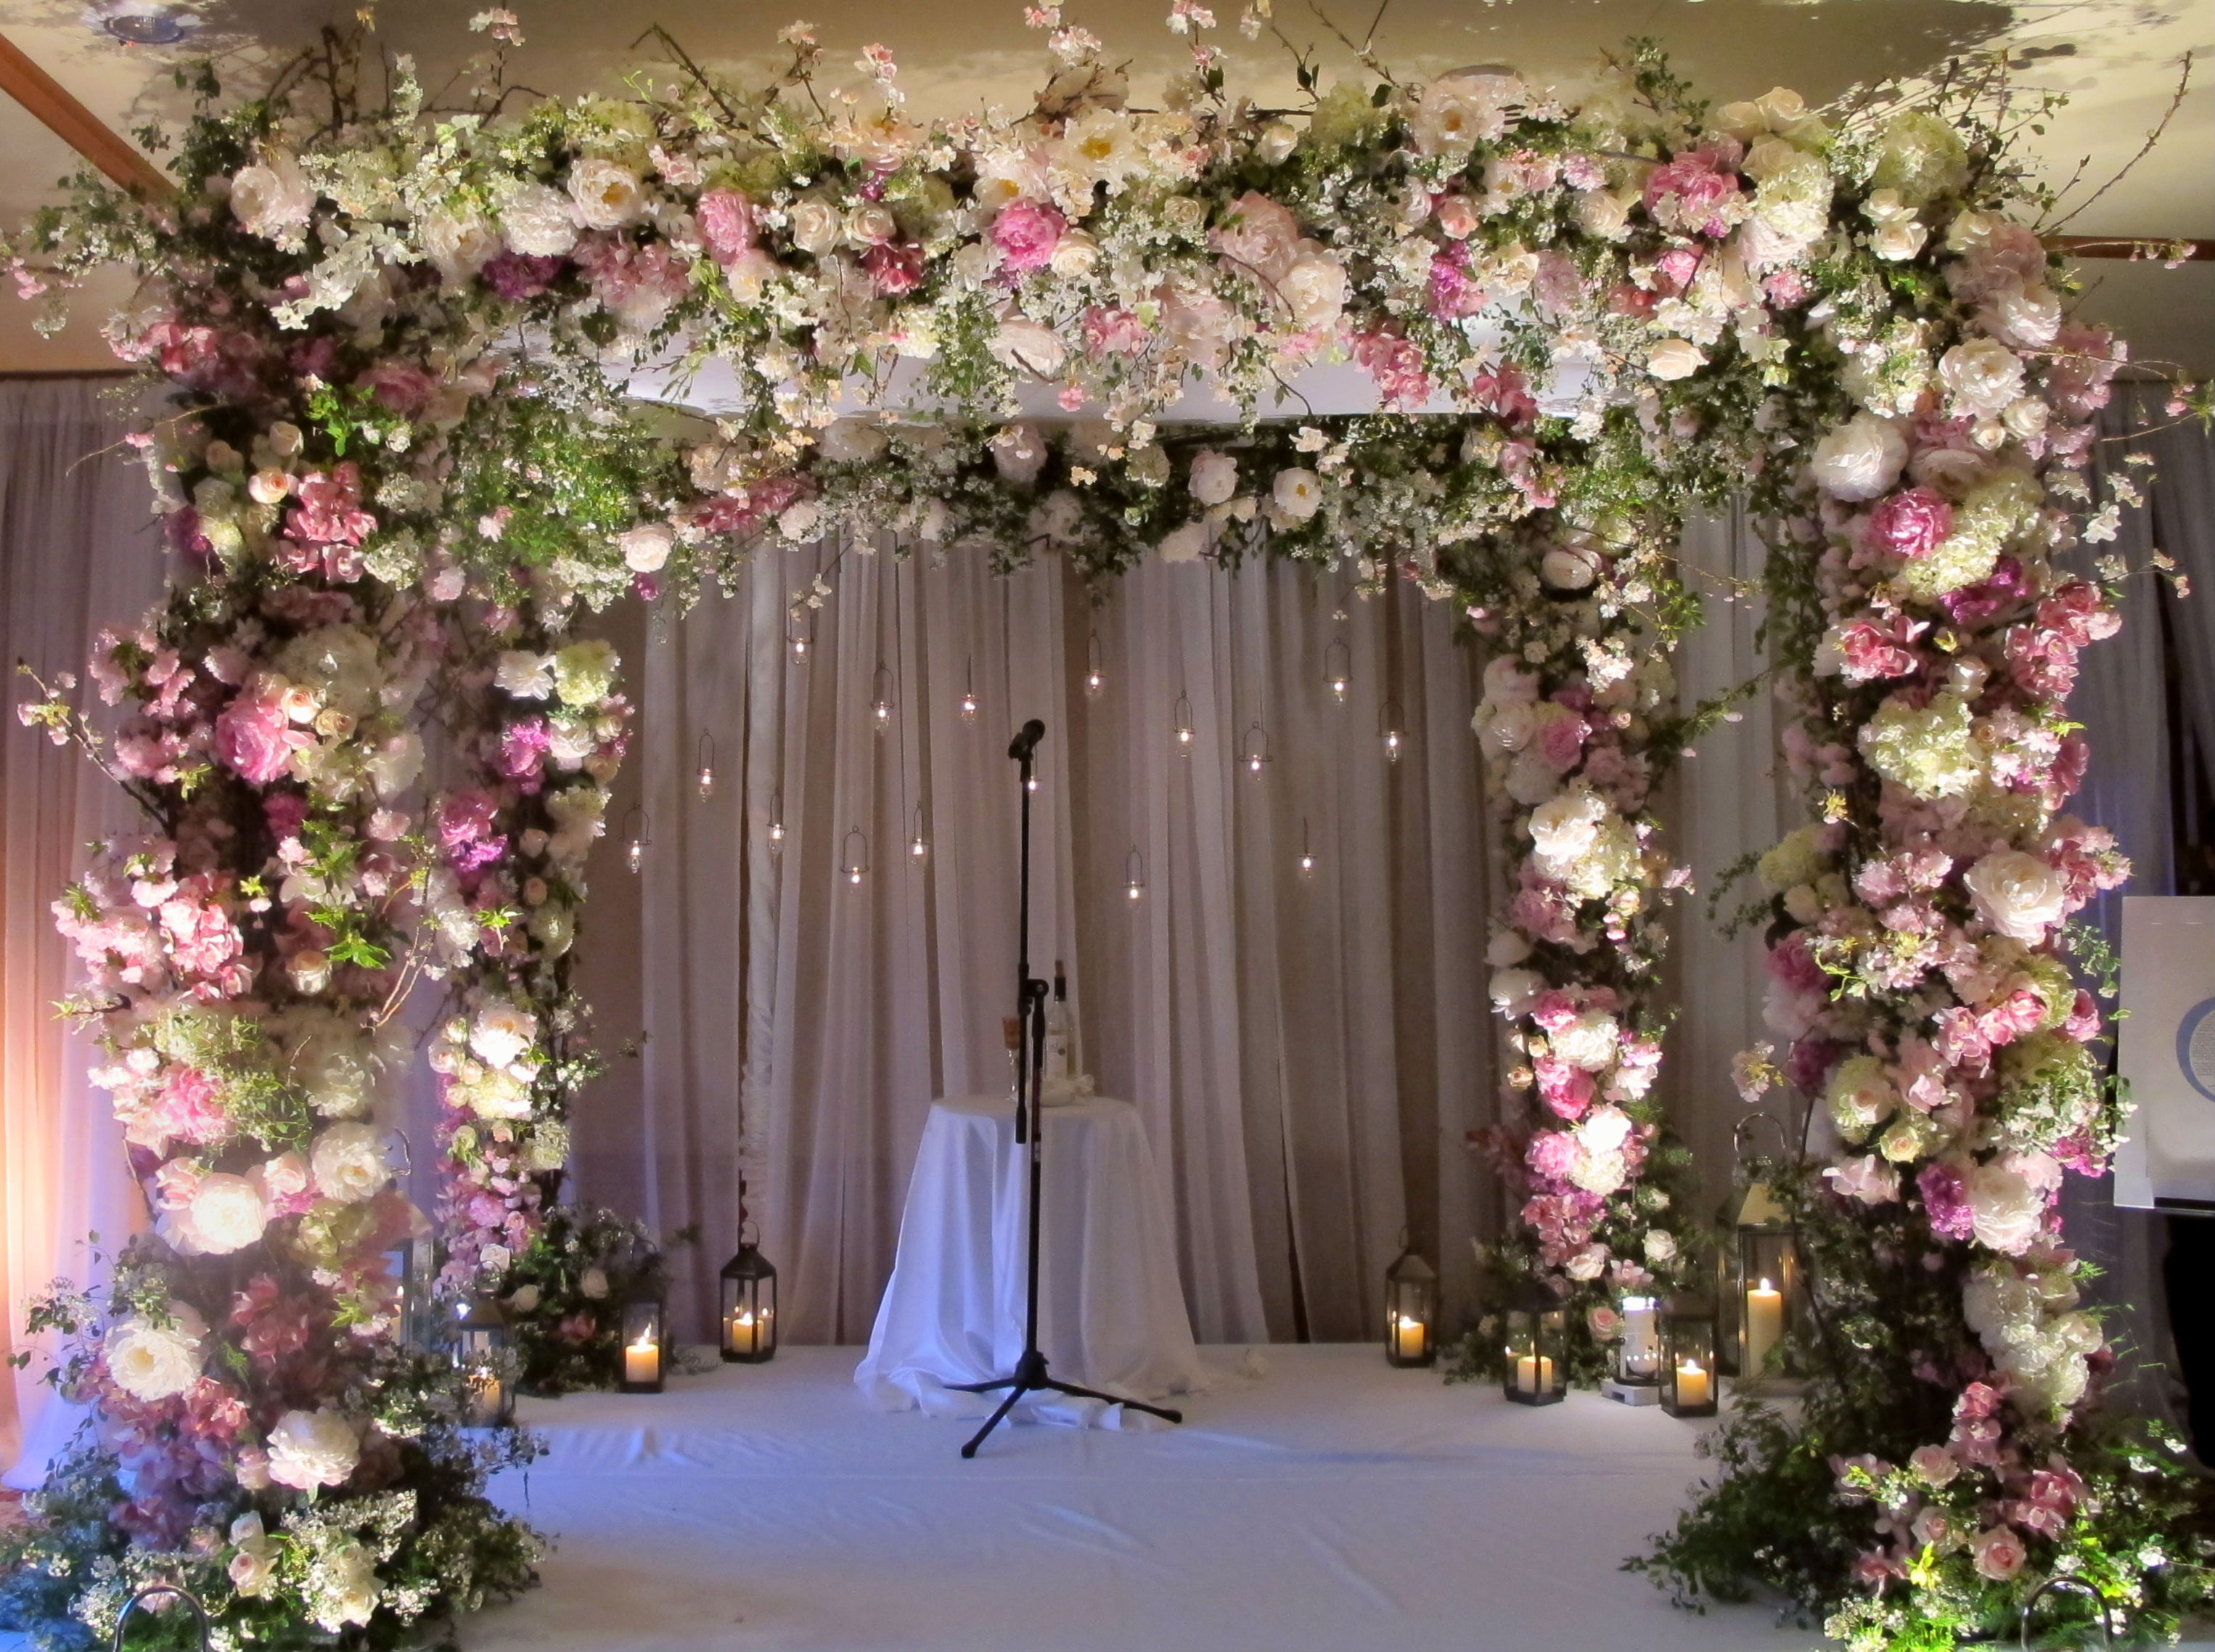 The wedding chuppah design by Tantawan Bloom